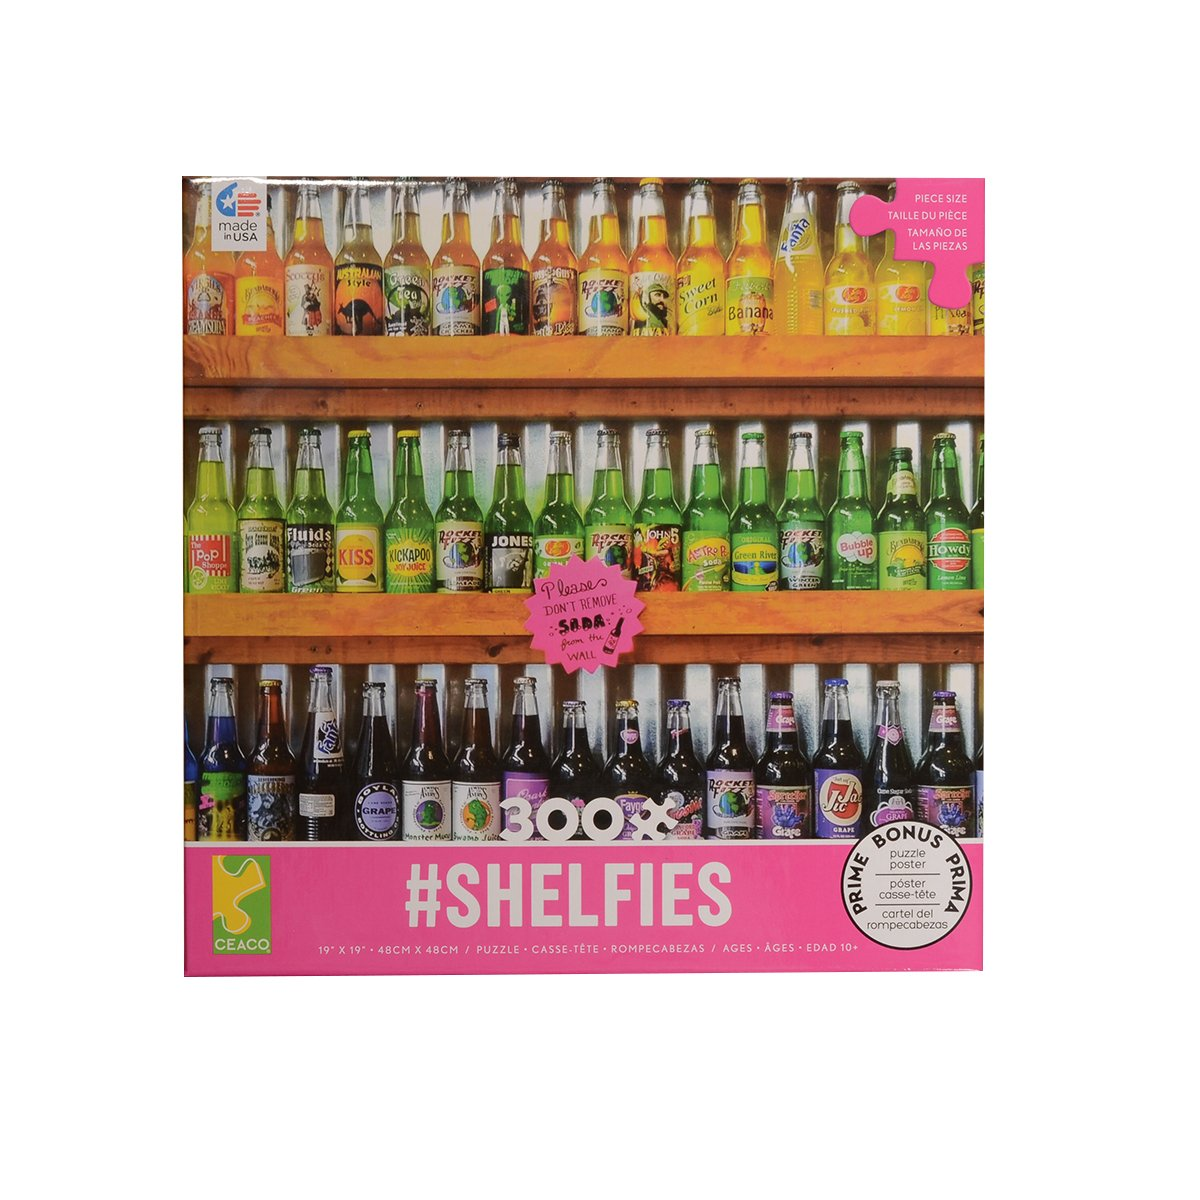 Ceaco Soda Pop #Shelfies 300 Piece Puzzle